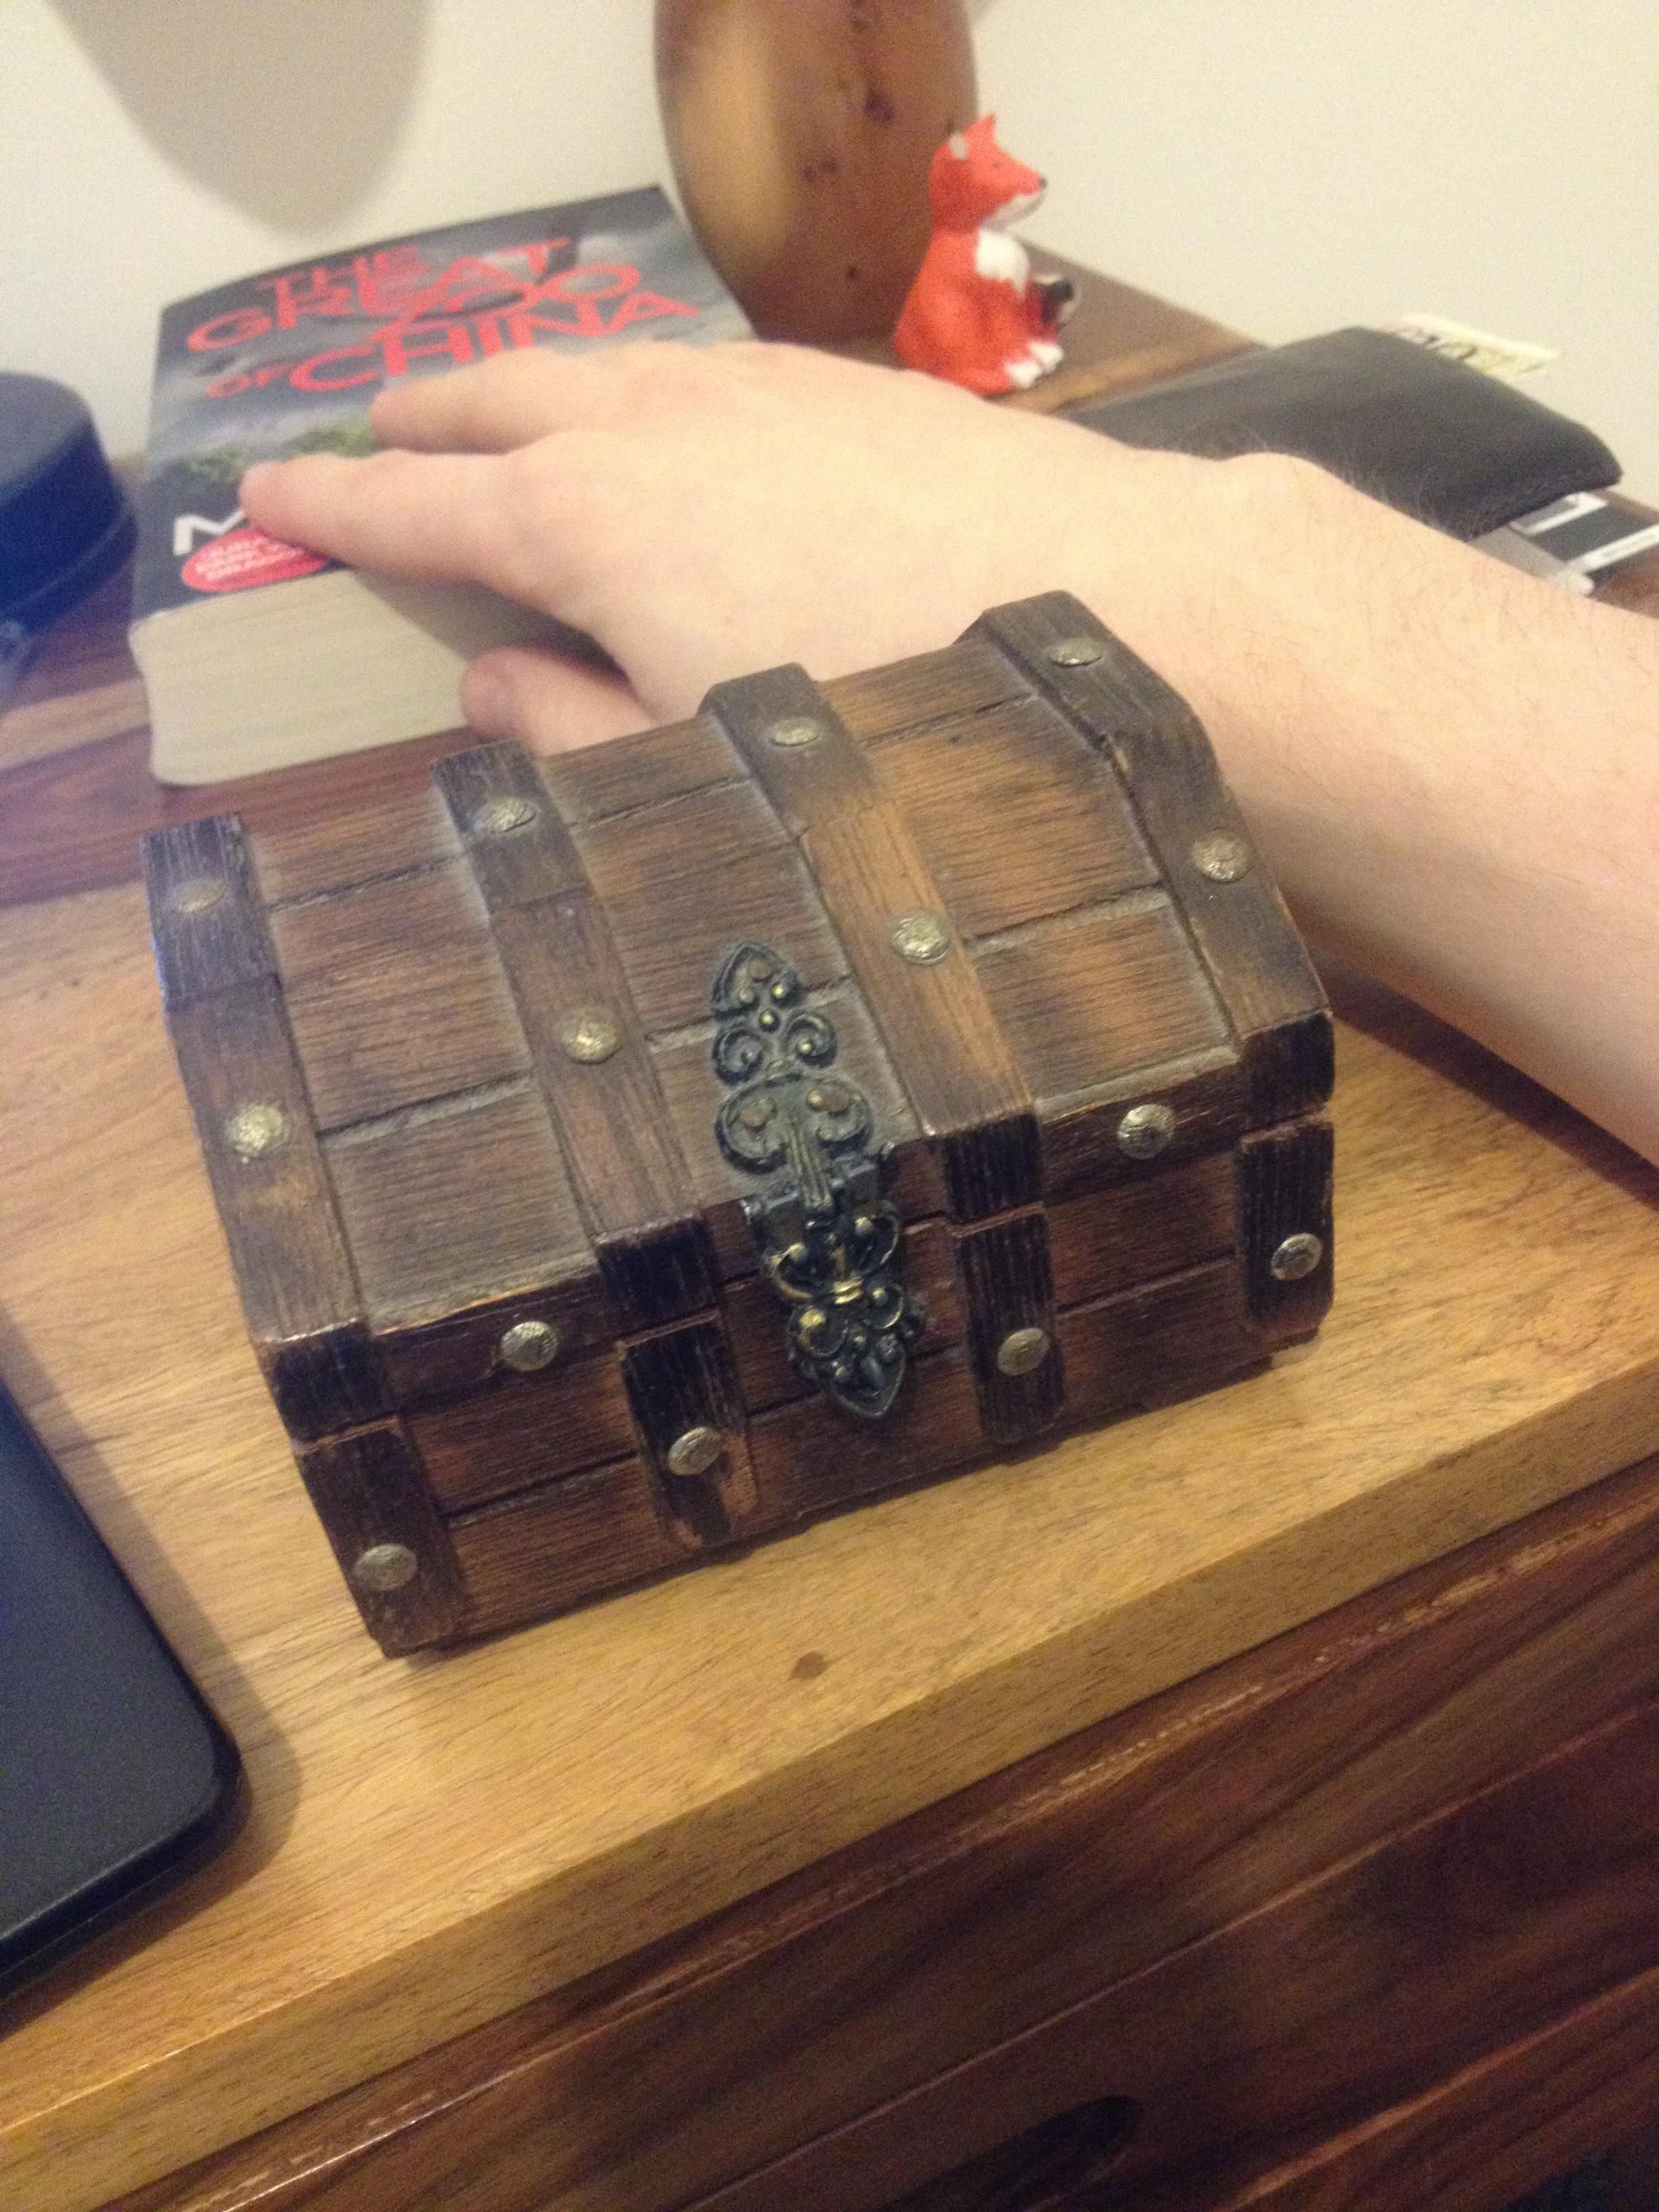 Skyrim Alchemy Chest my sister's gift to me. Sister